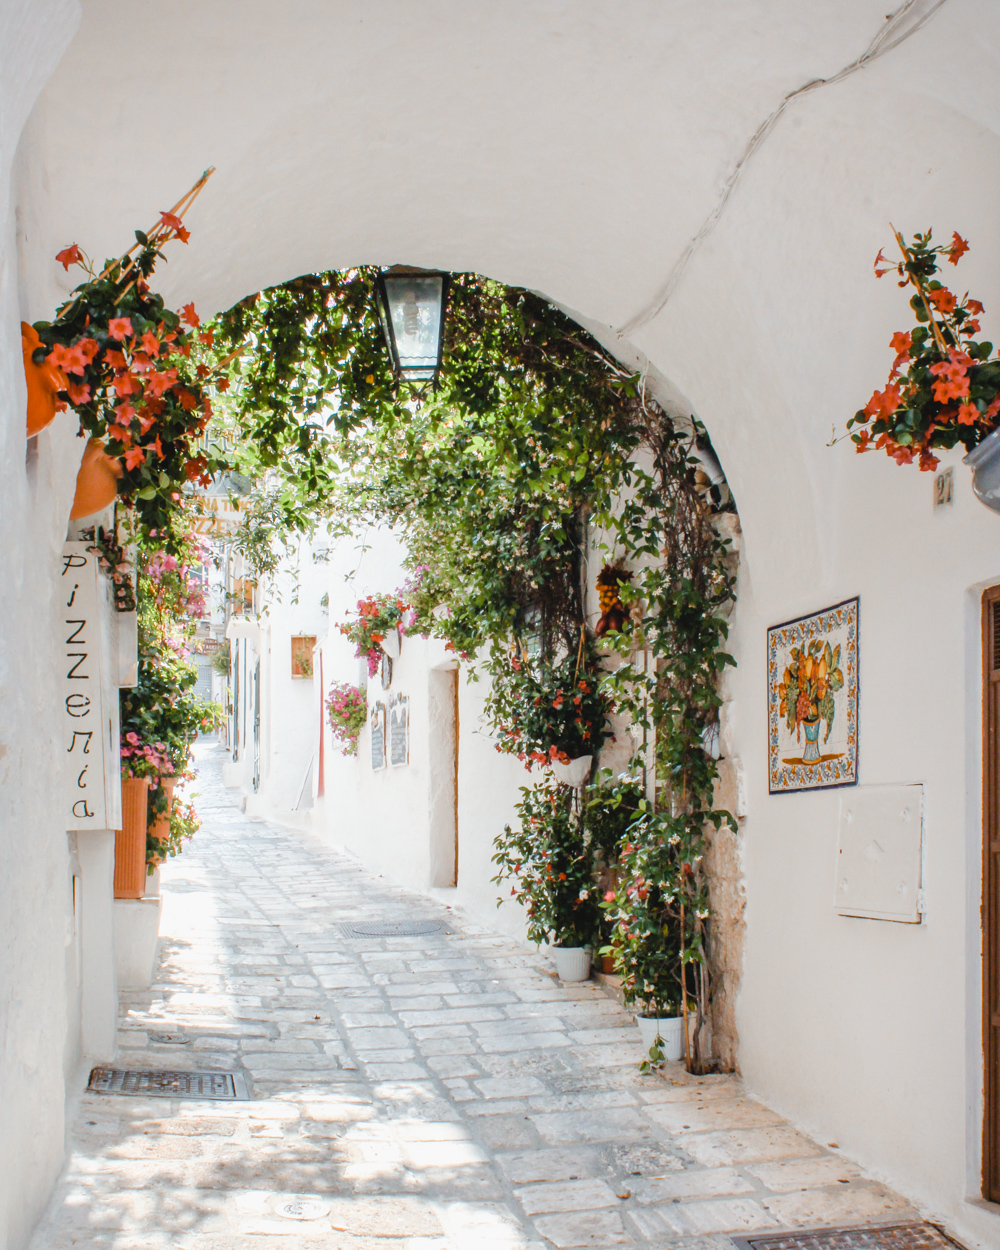 As soon as we moved to Italy, I wanted to explore the white alleys of Ostuni, the Trulli houses of Alberbello and the sandy beaches of Puglia. After a